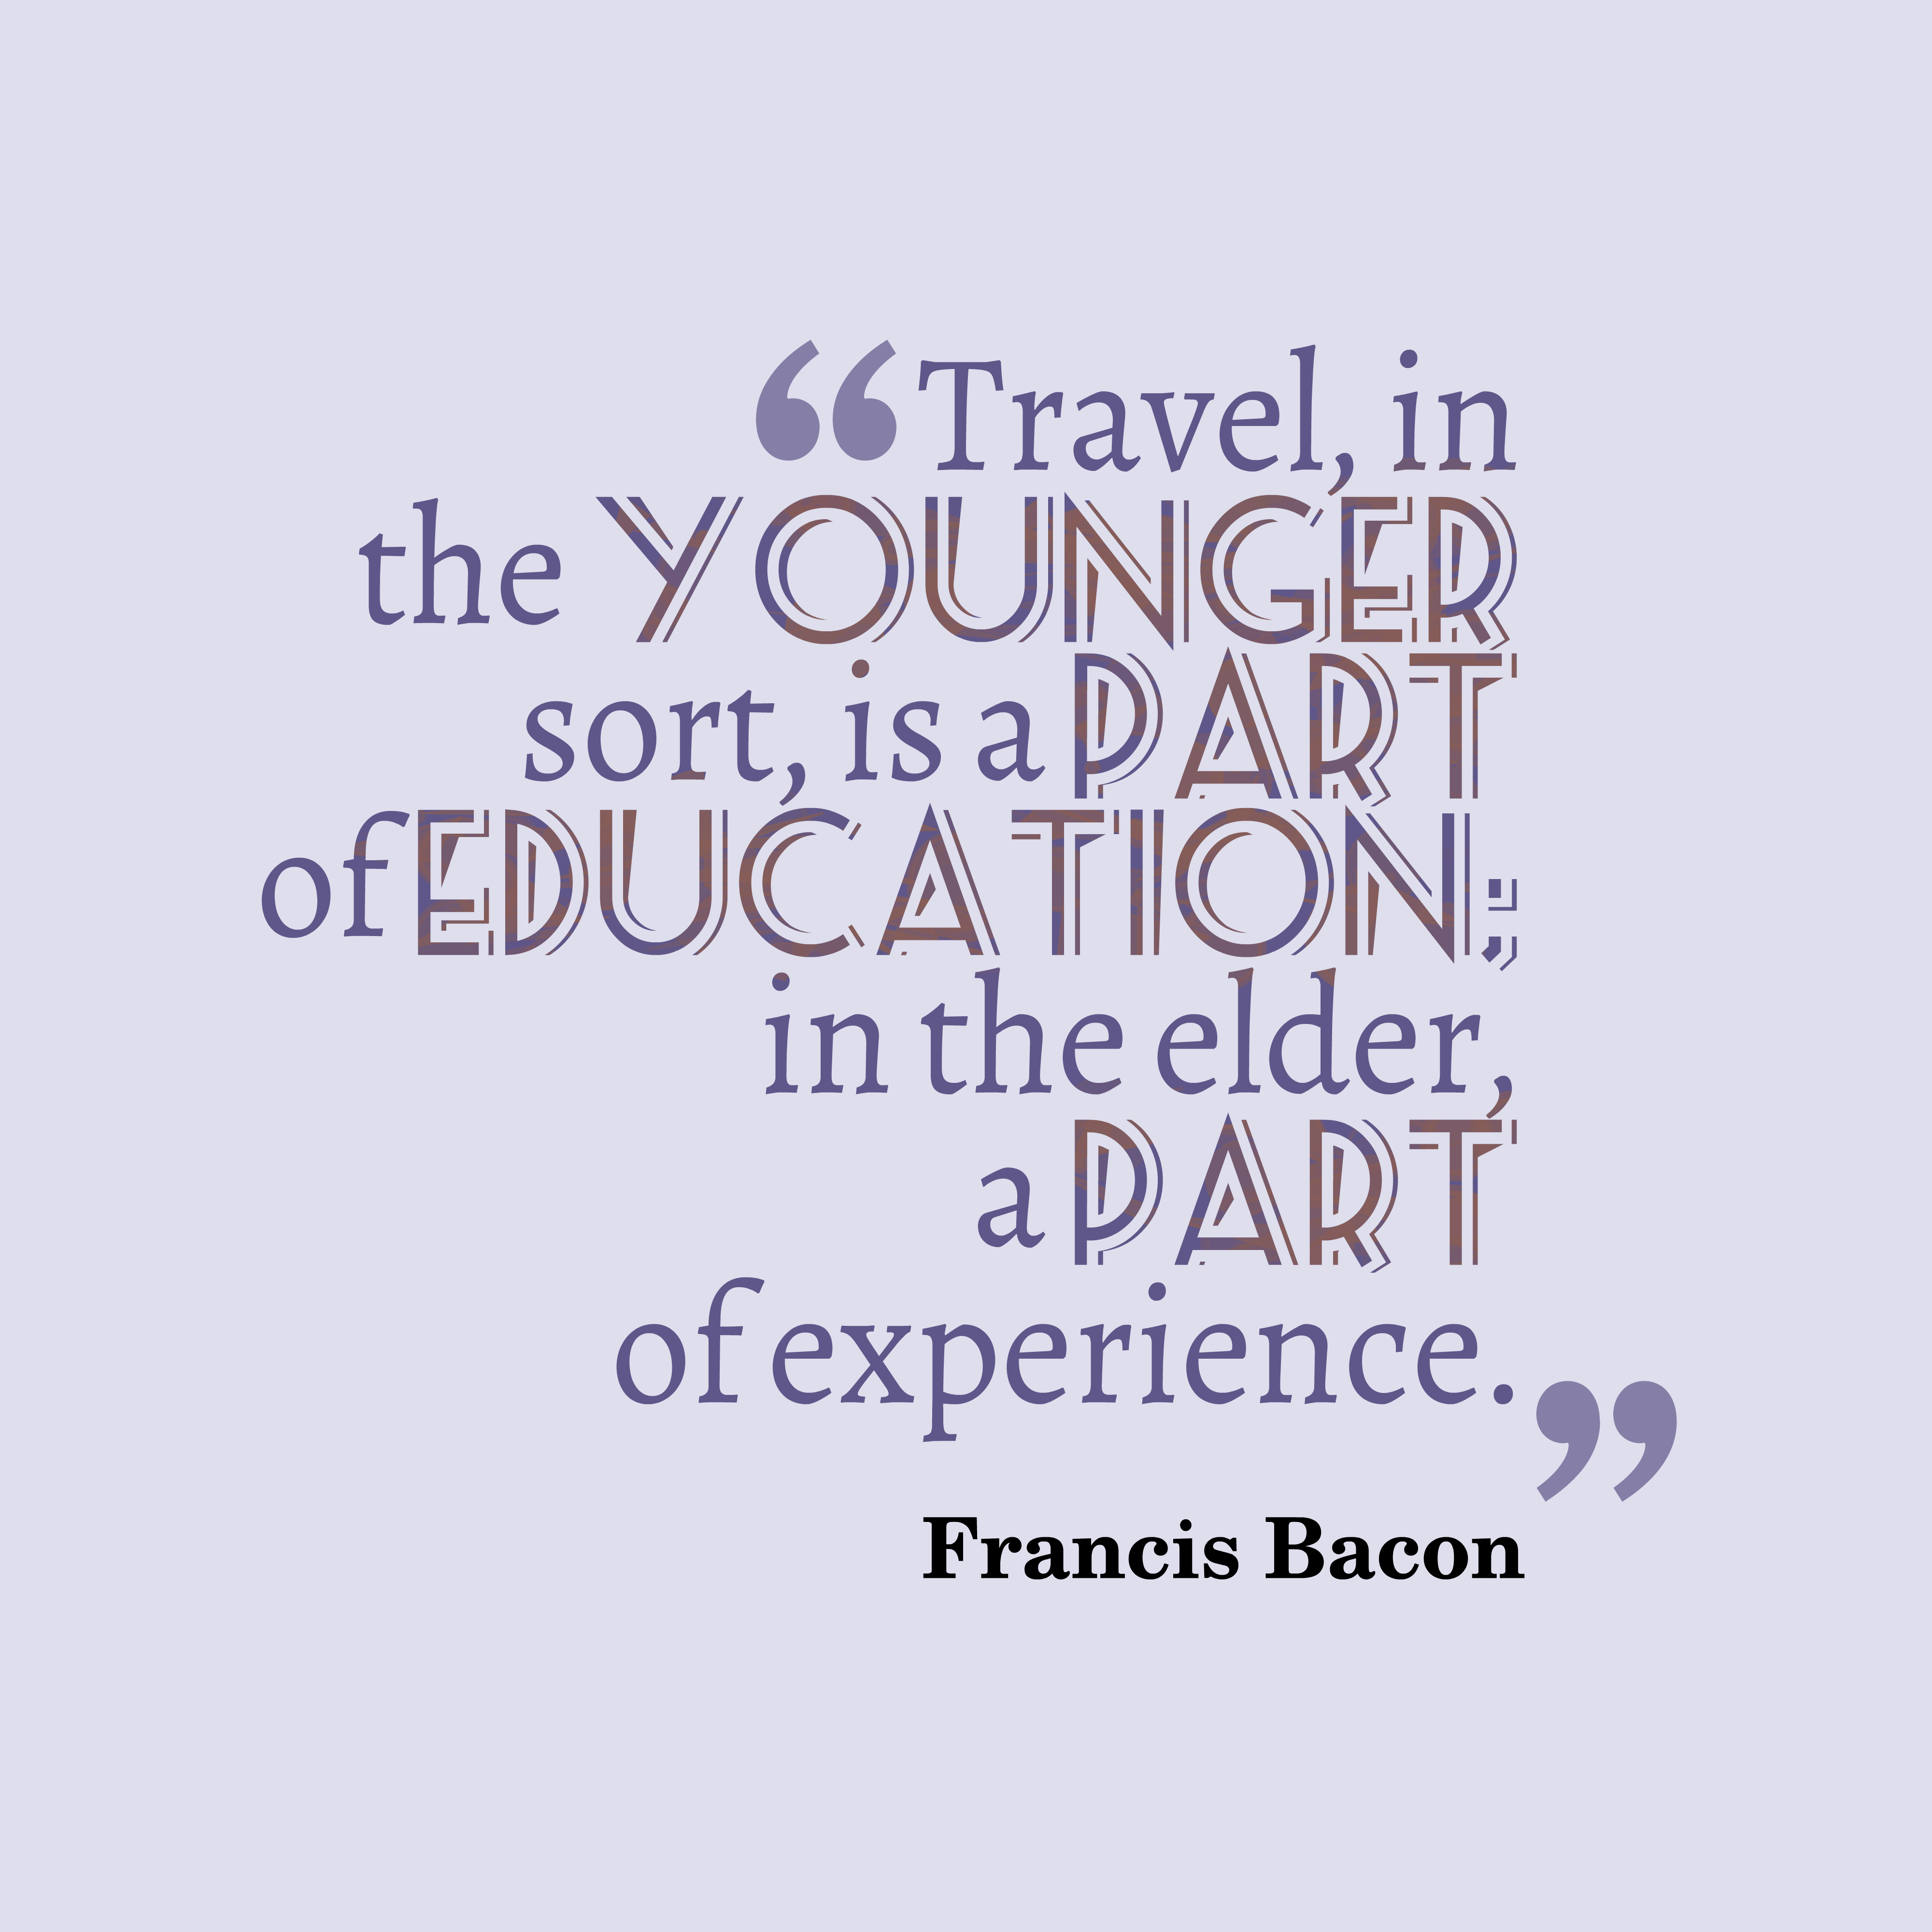 Quotes image of Travel, in the younger sort, is a part of education; in the elder, a part of experience.